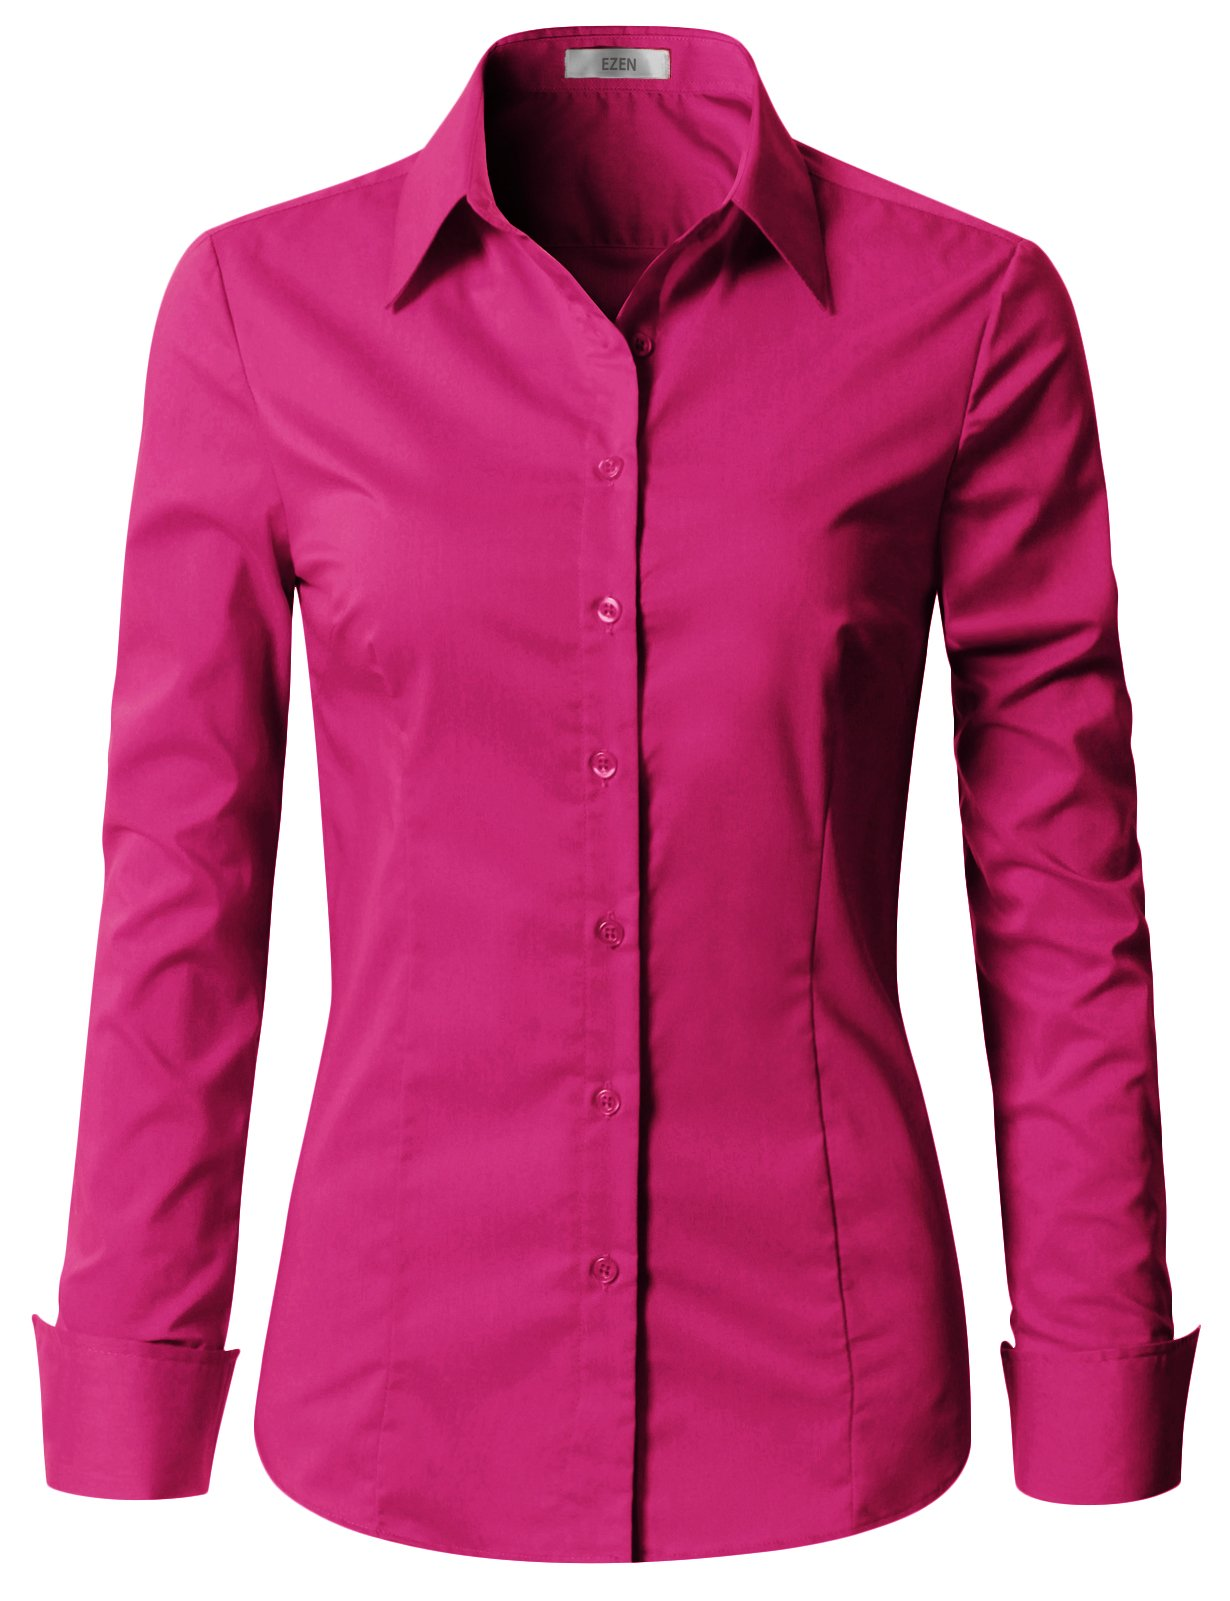 EZEN Womens Casual Slim fit Button Down Shirts DEEP Pink X-Large